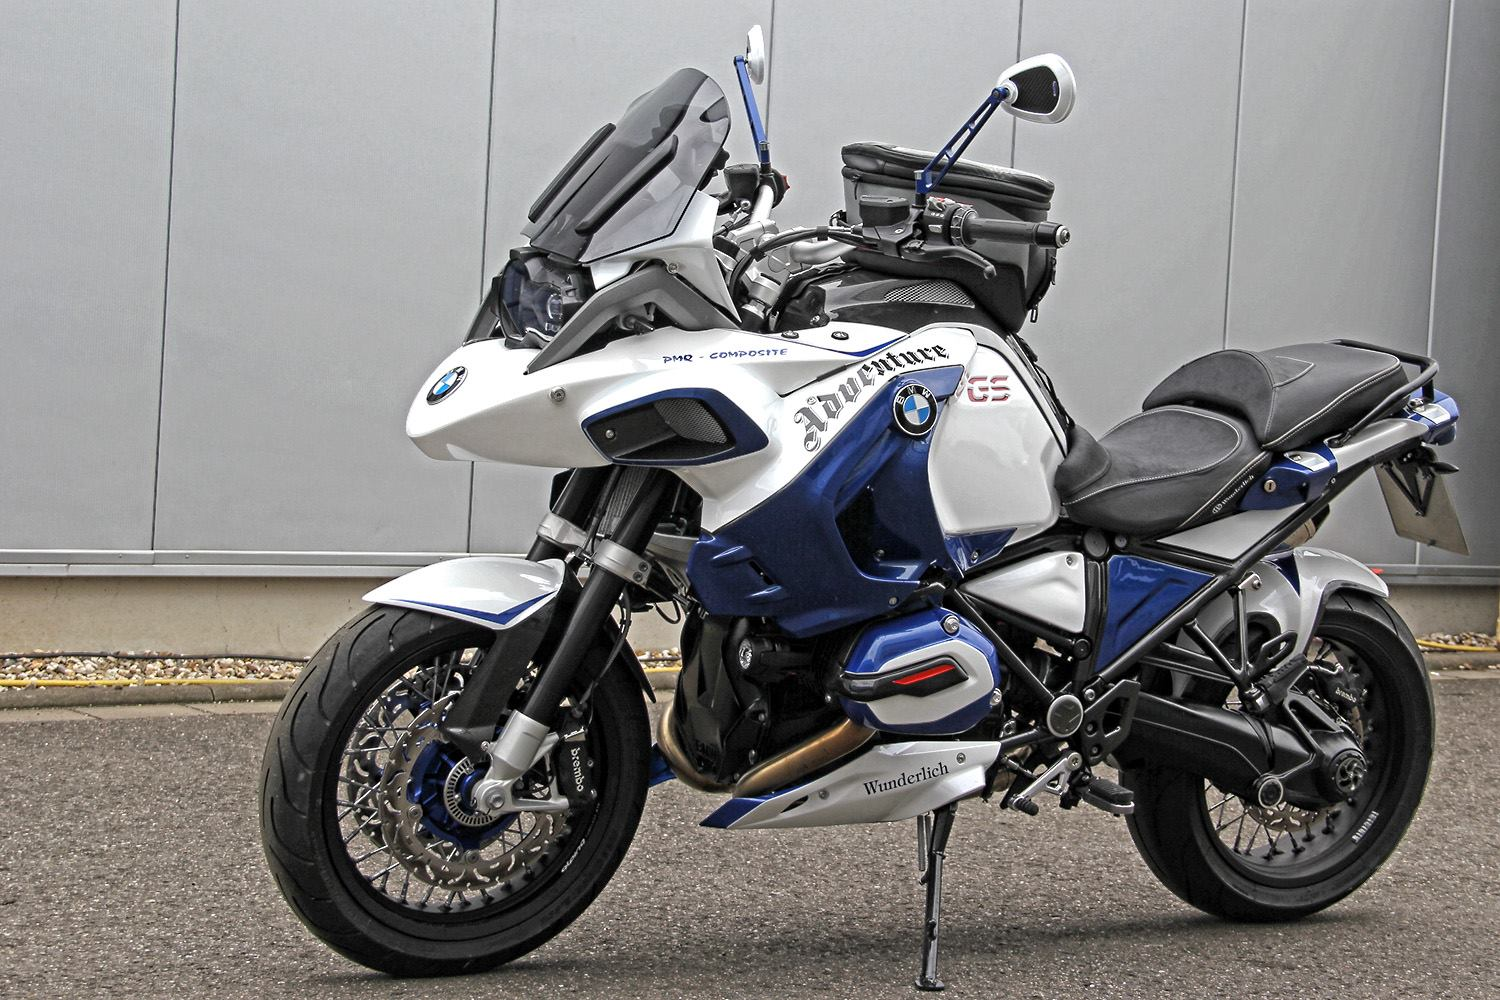 ... that there was an R1200GS Adventure somewhere in the first picture